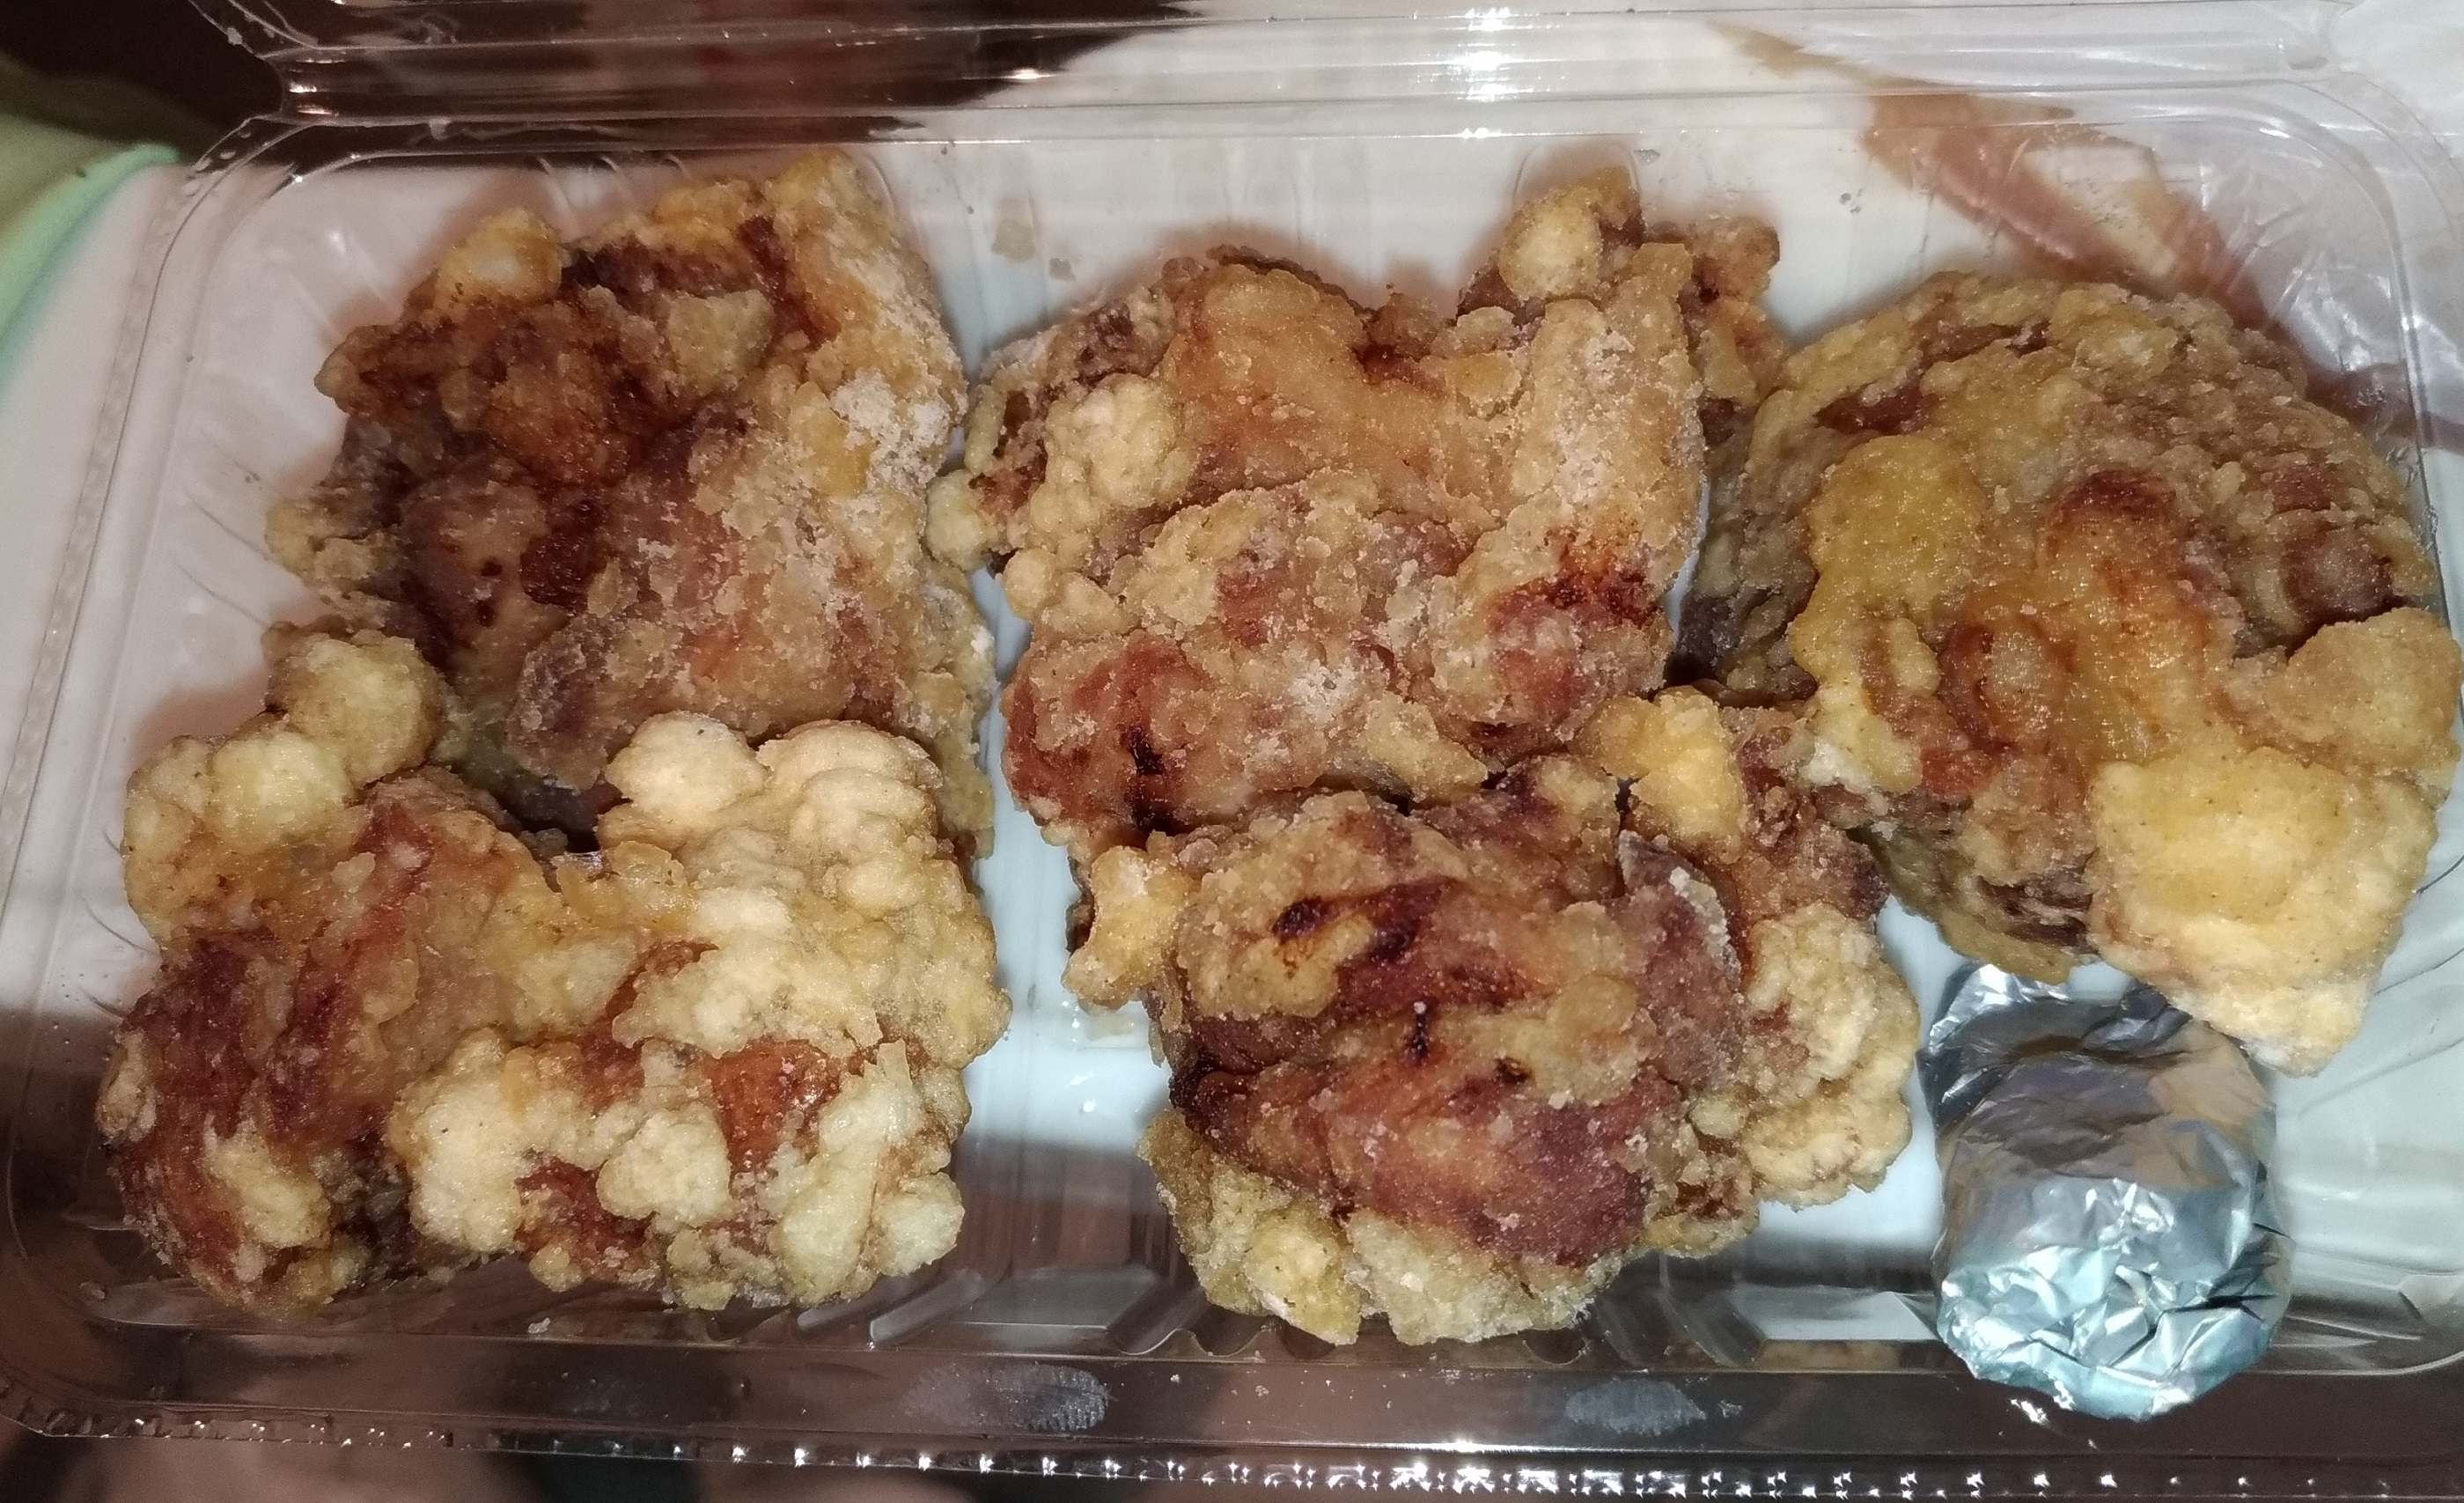 take_out_osaka_karaage_fukushima0513_1.jpg